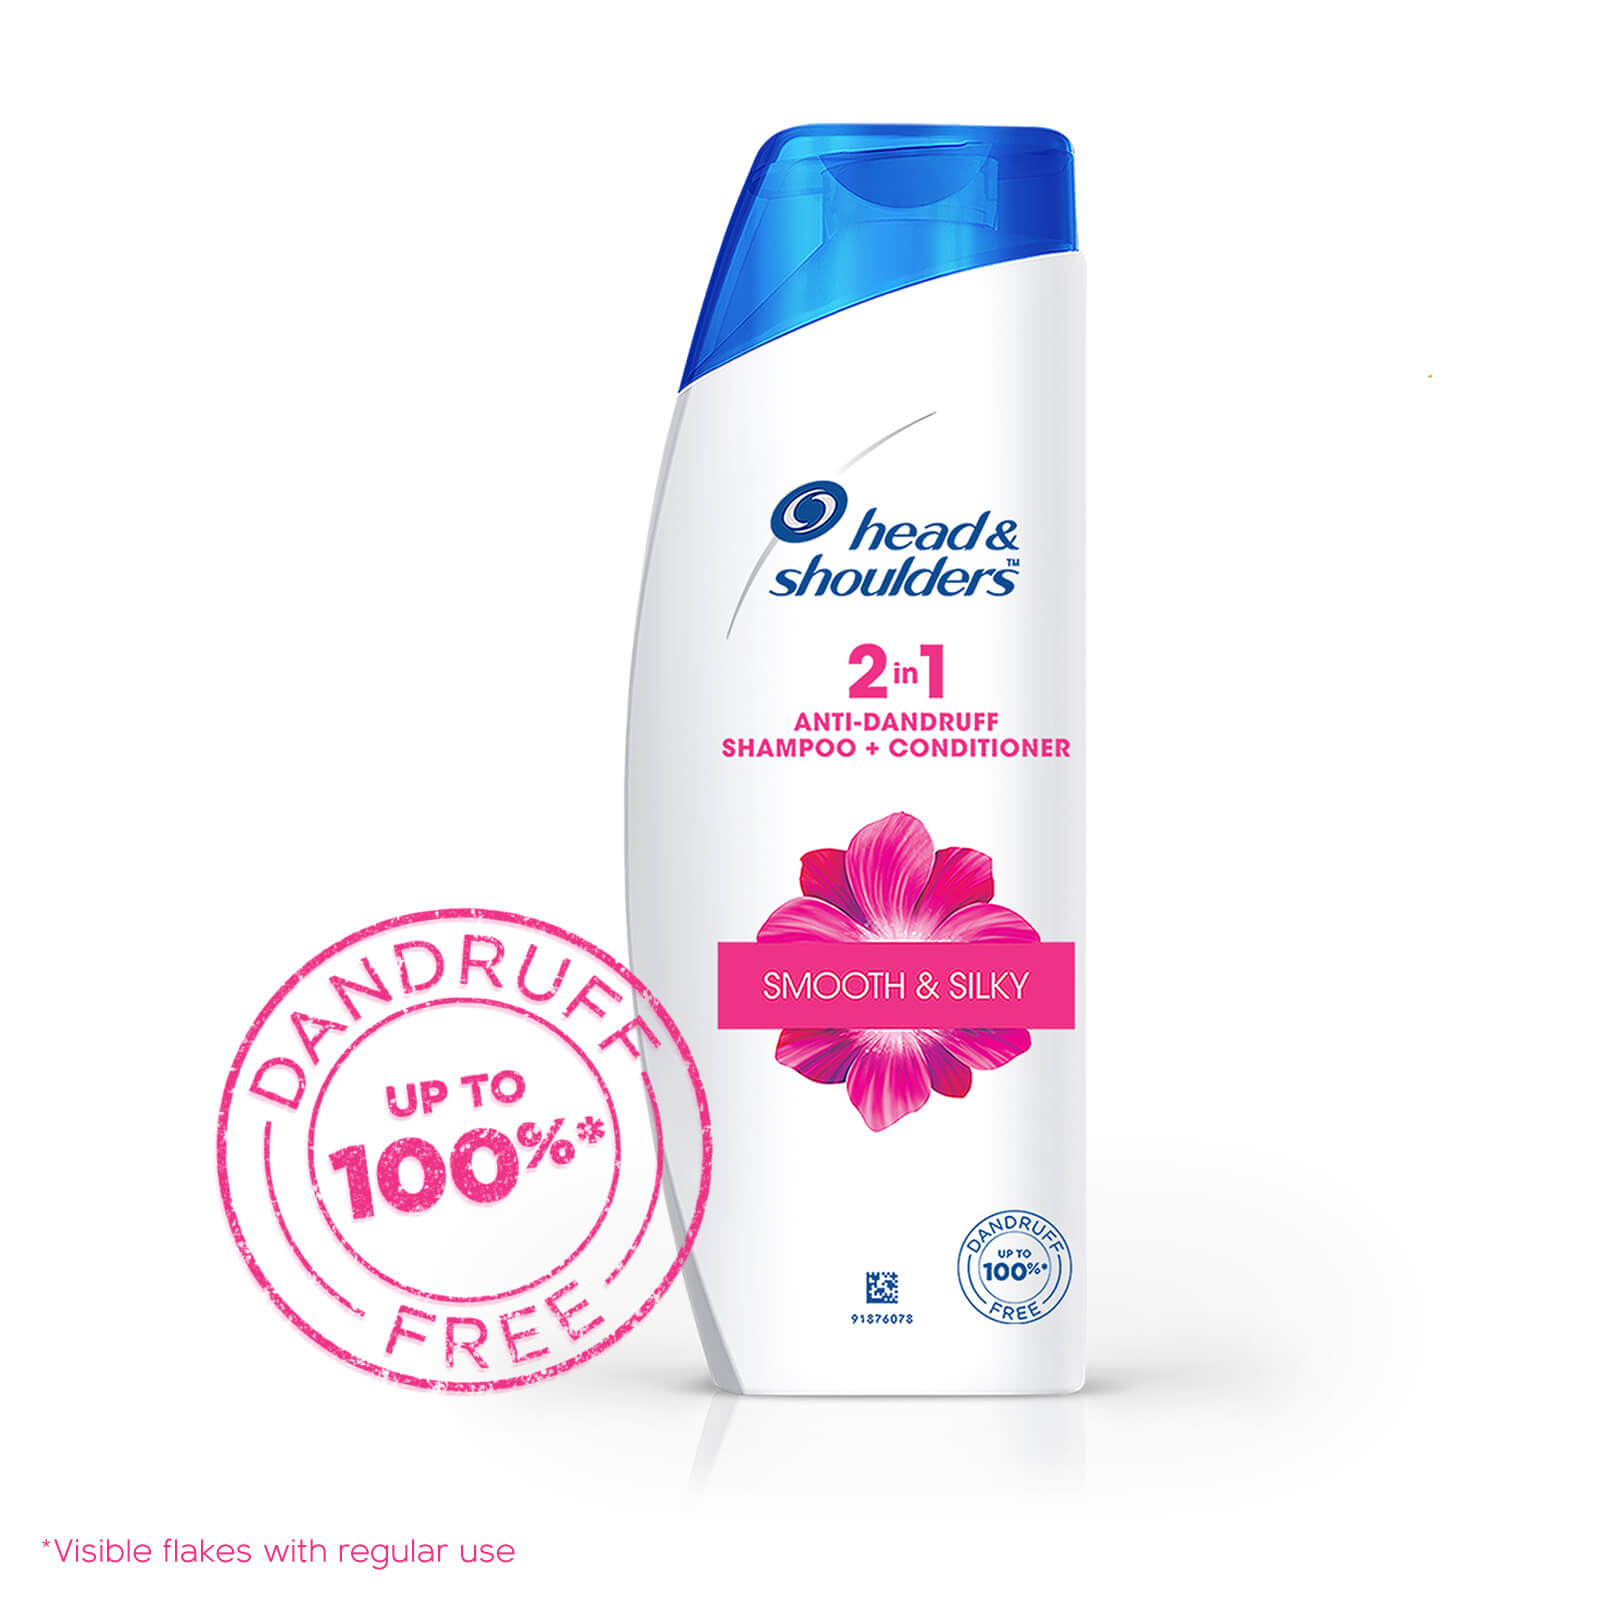 Head and Shoulders 2-in-1 Silky Smooth Anti-Dandruff Shampoo + Conditioner